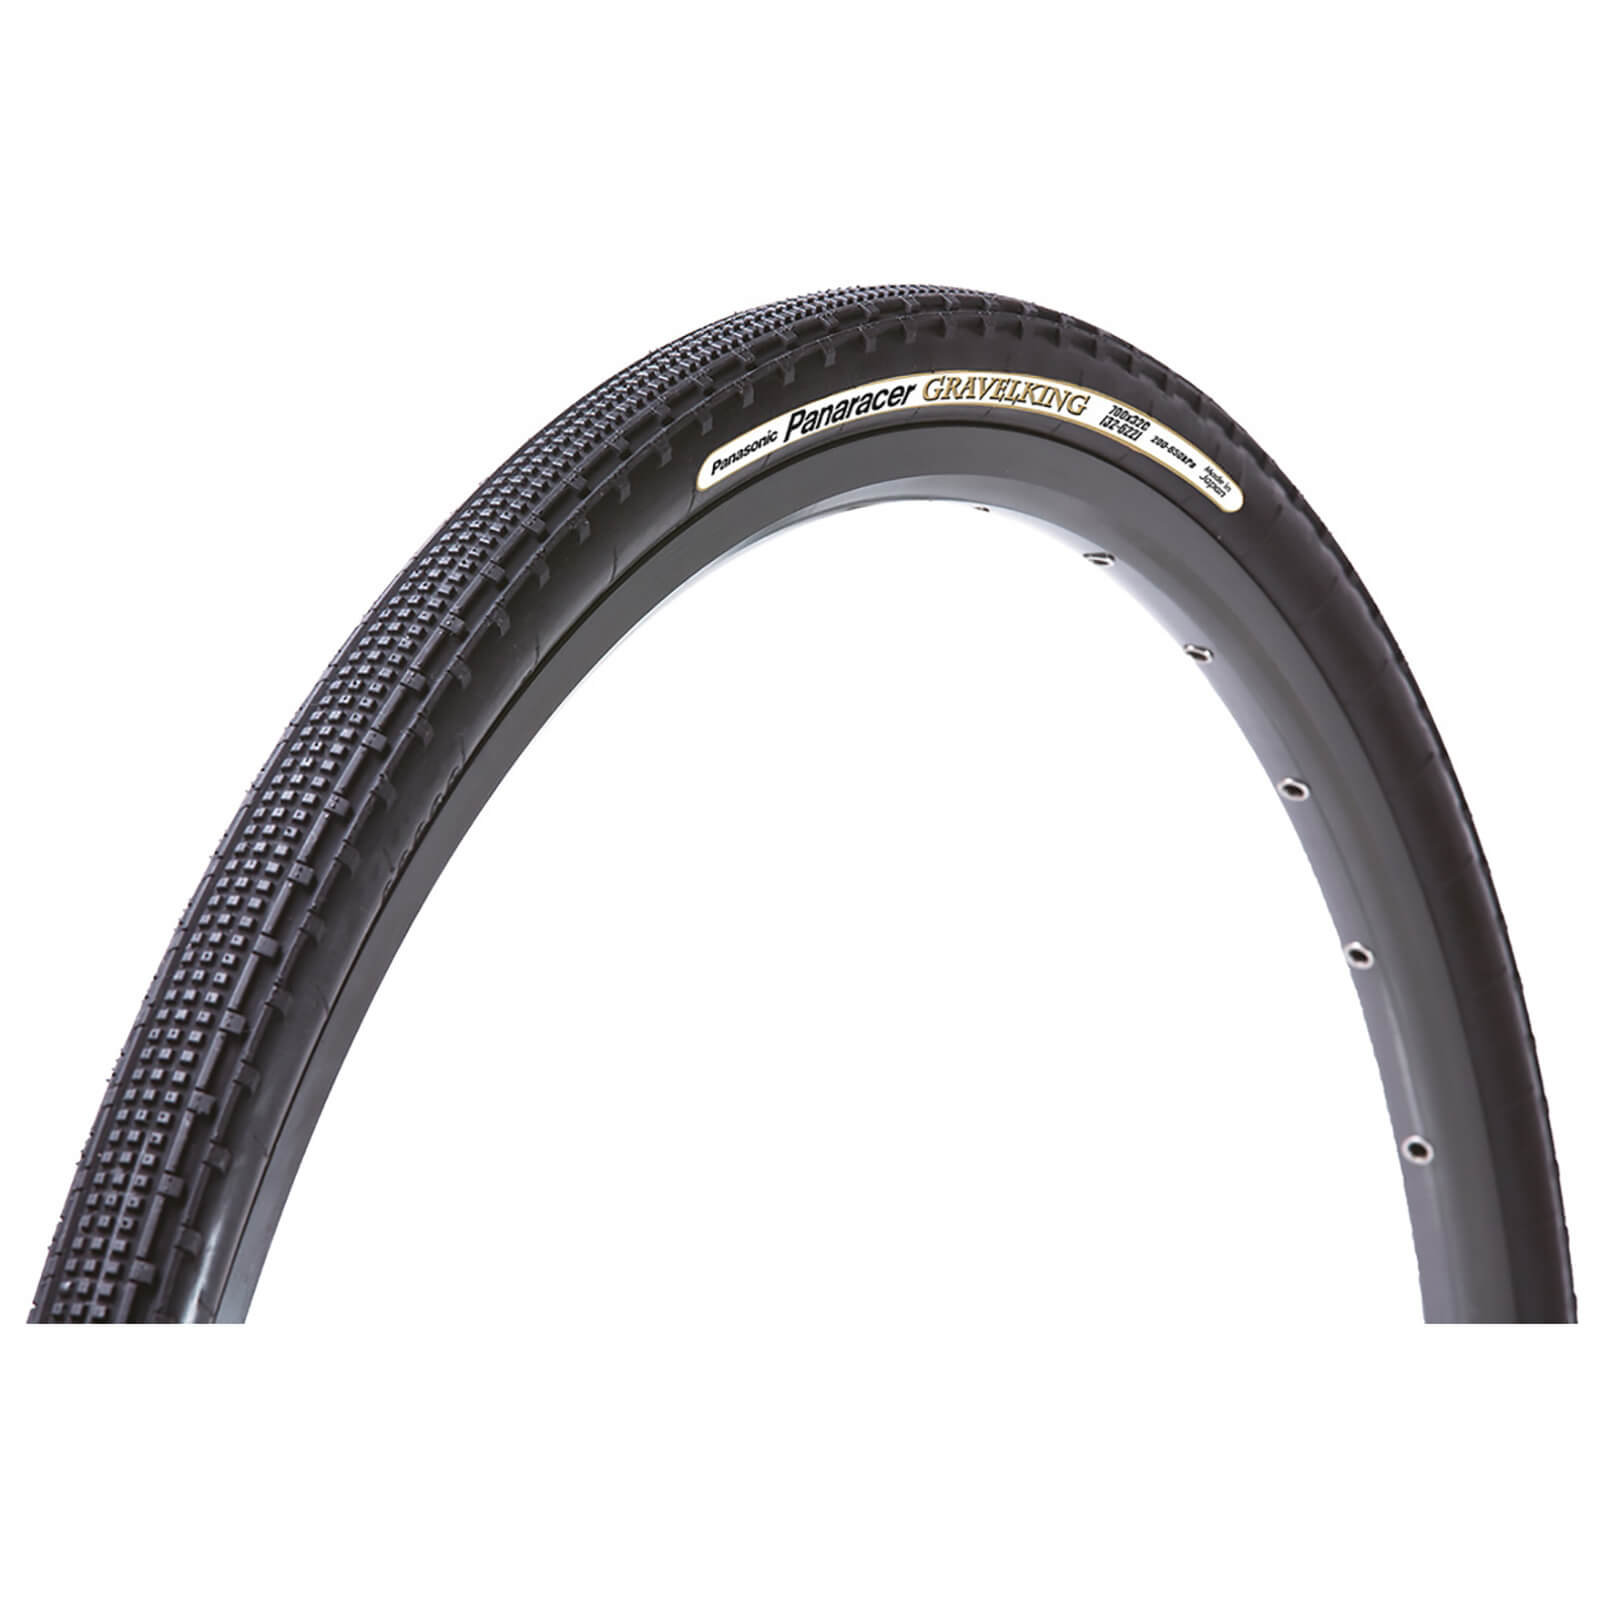 Panaracer Gravel King SK Tubeless Compatible Clincher Tyre